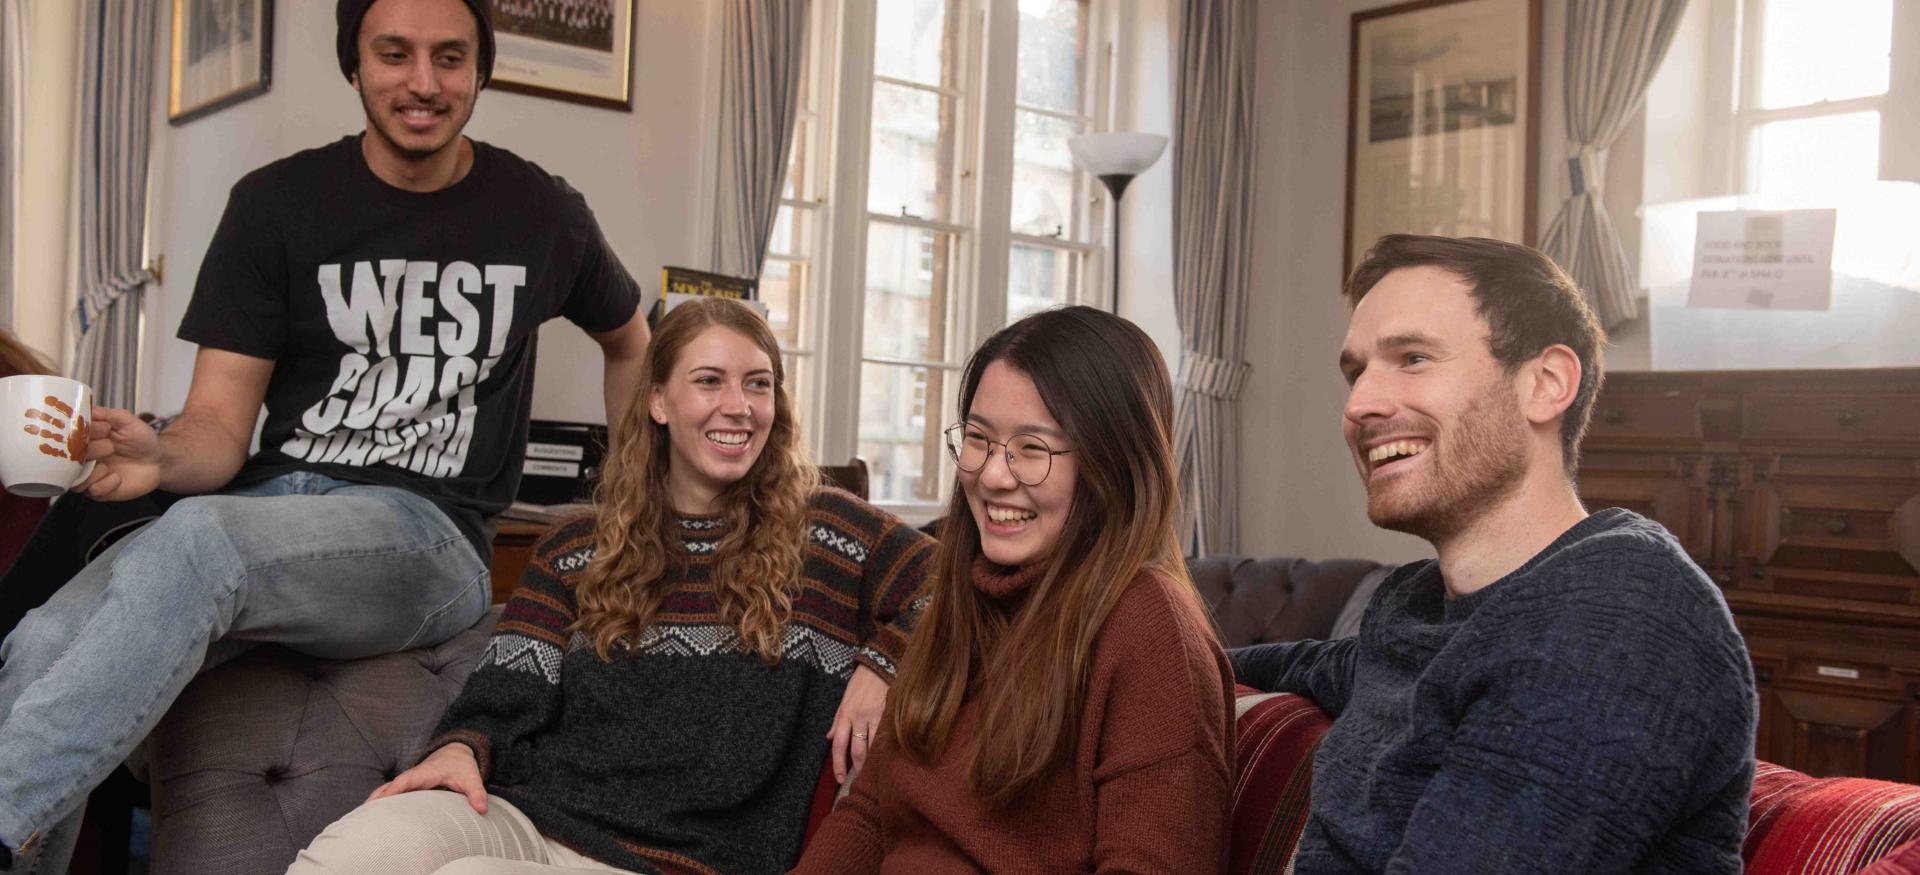 A group of four male and female postgraduate students sit on a couch laughing.